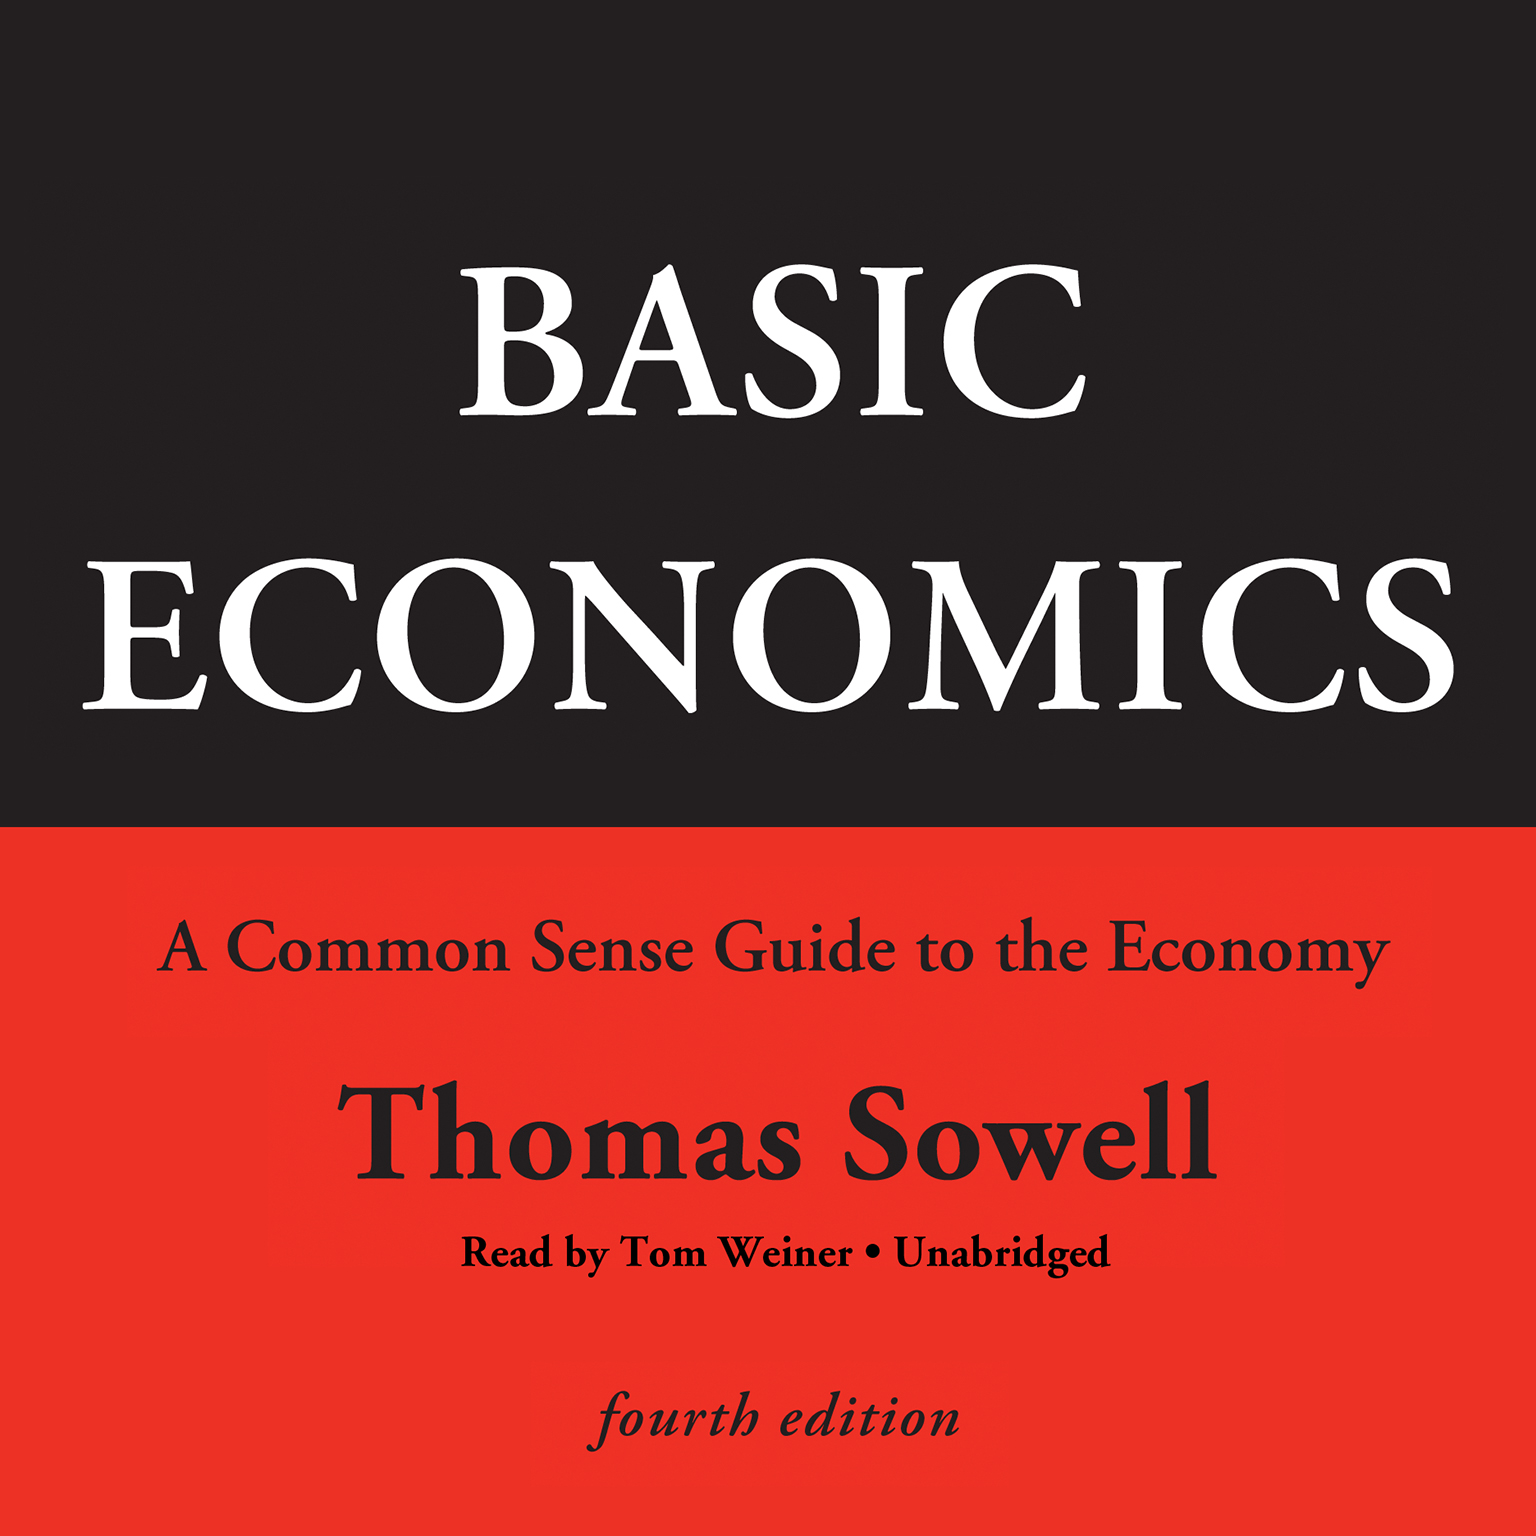 Printable Basic Economics, Fourth Edition: A Common Sense Guide to the Economy Audiobook Cover Art